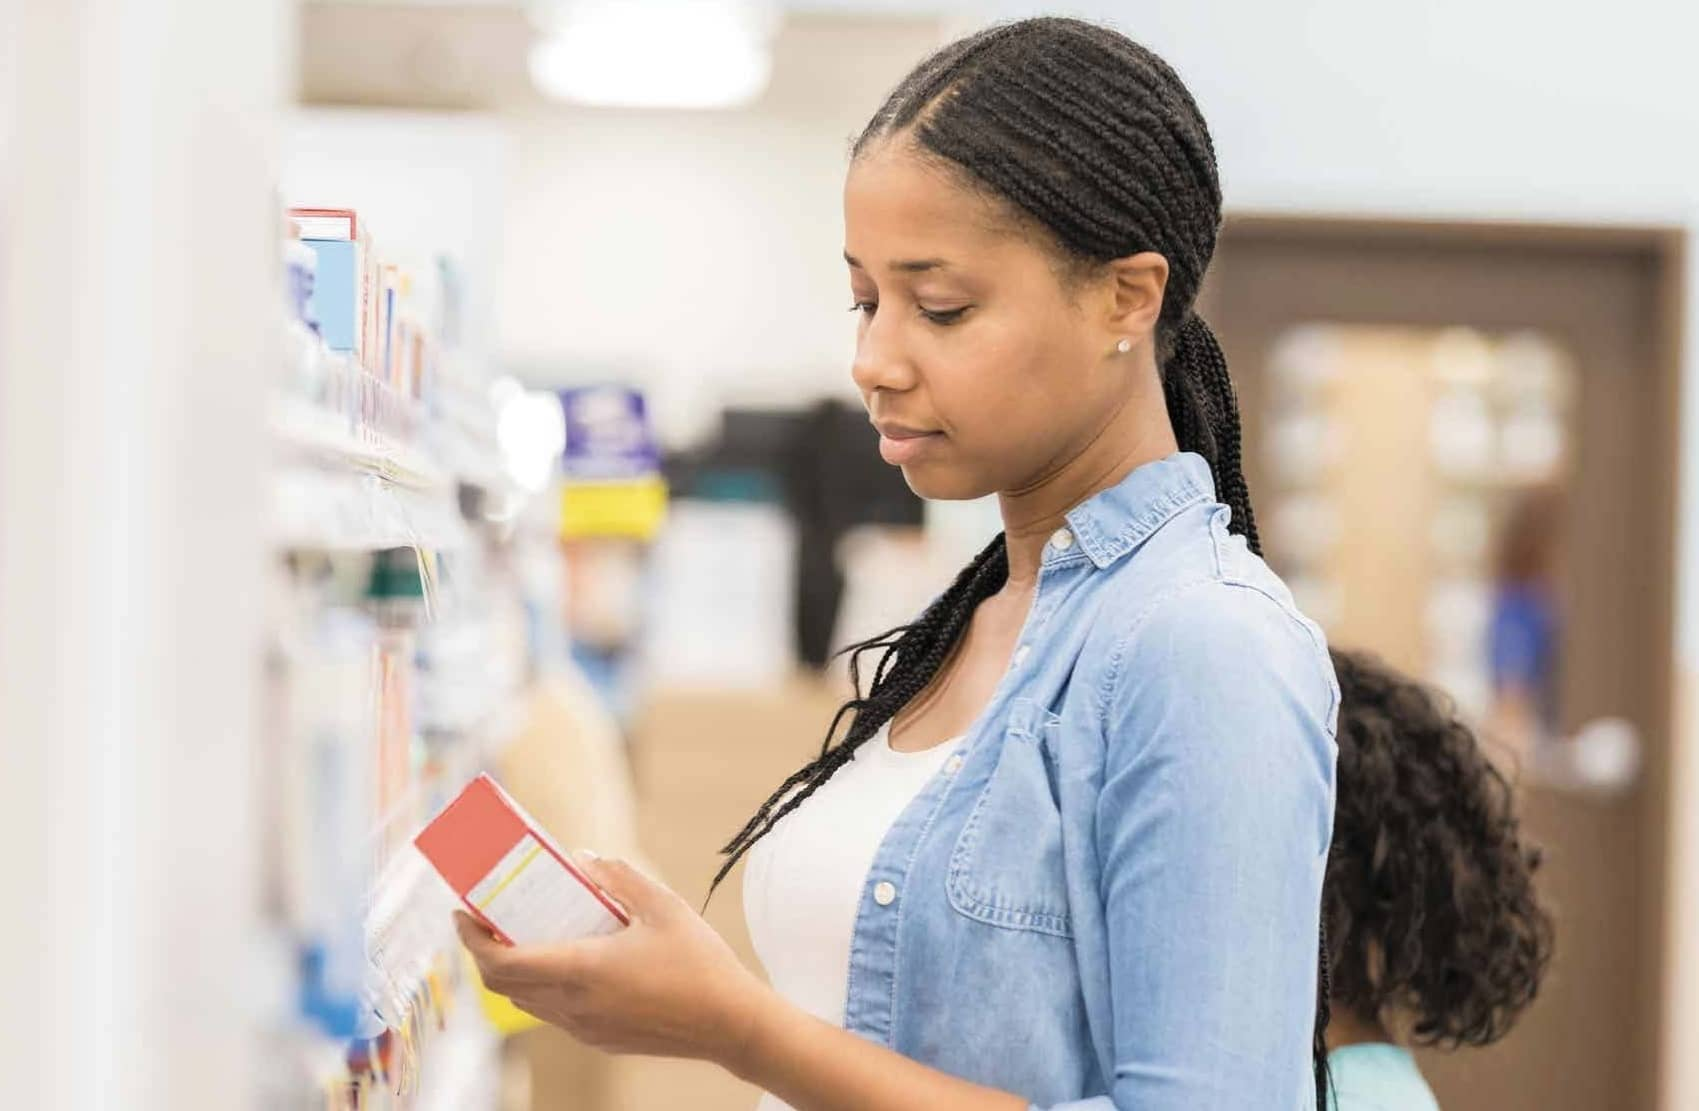 THE TRUTH ABOUT - feminine hygiene products